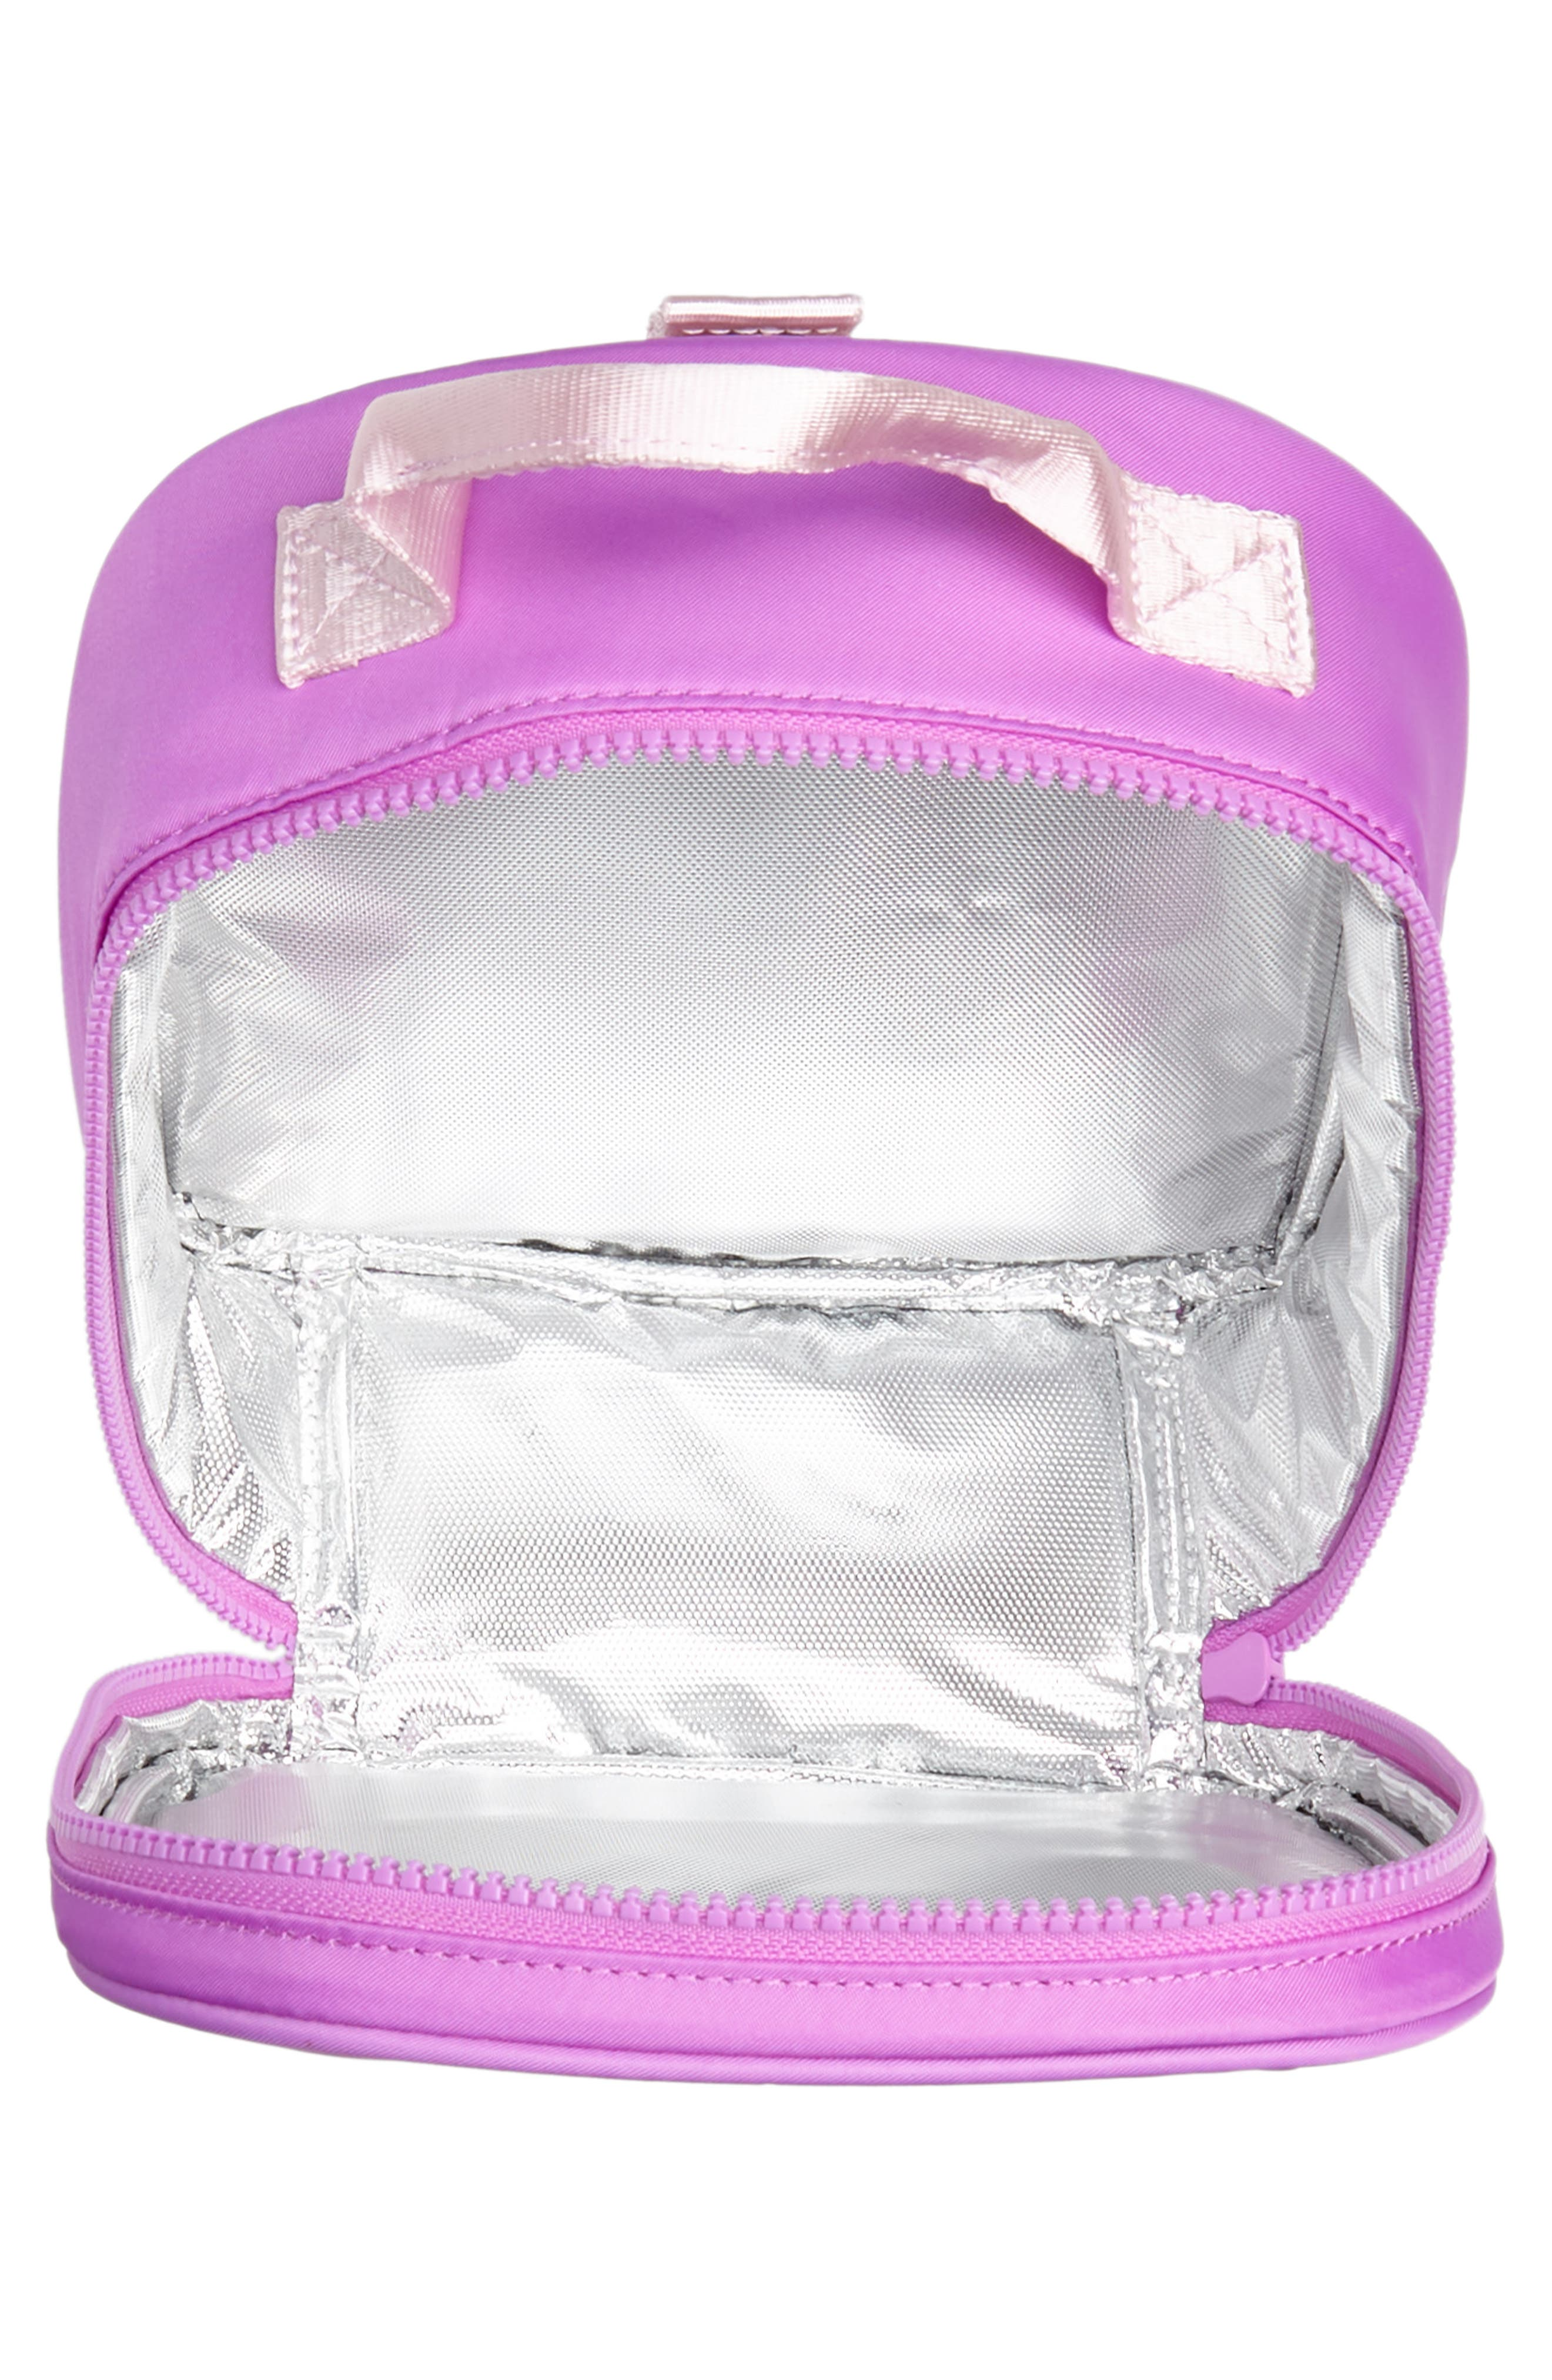 Lunchbox with Reversible Sequin Heart,                             Alternate thumbnail 3, color,                             950